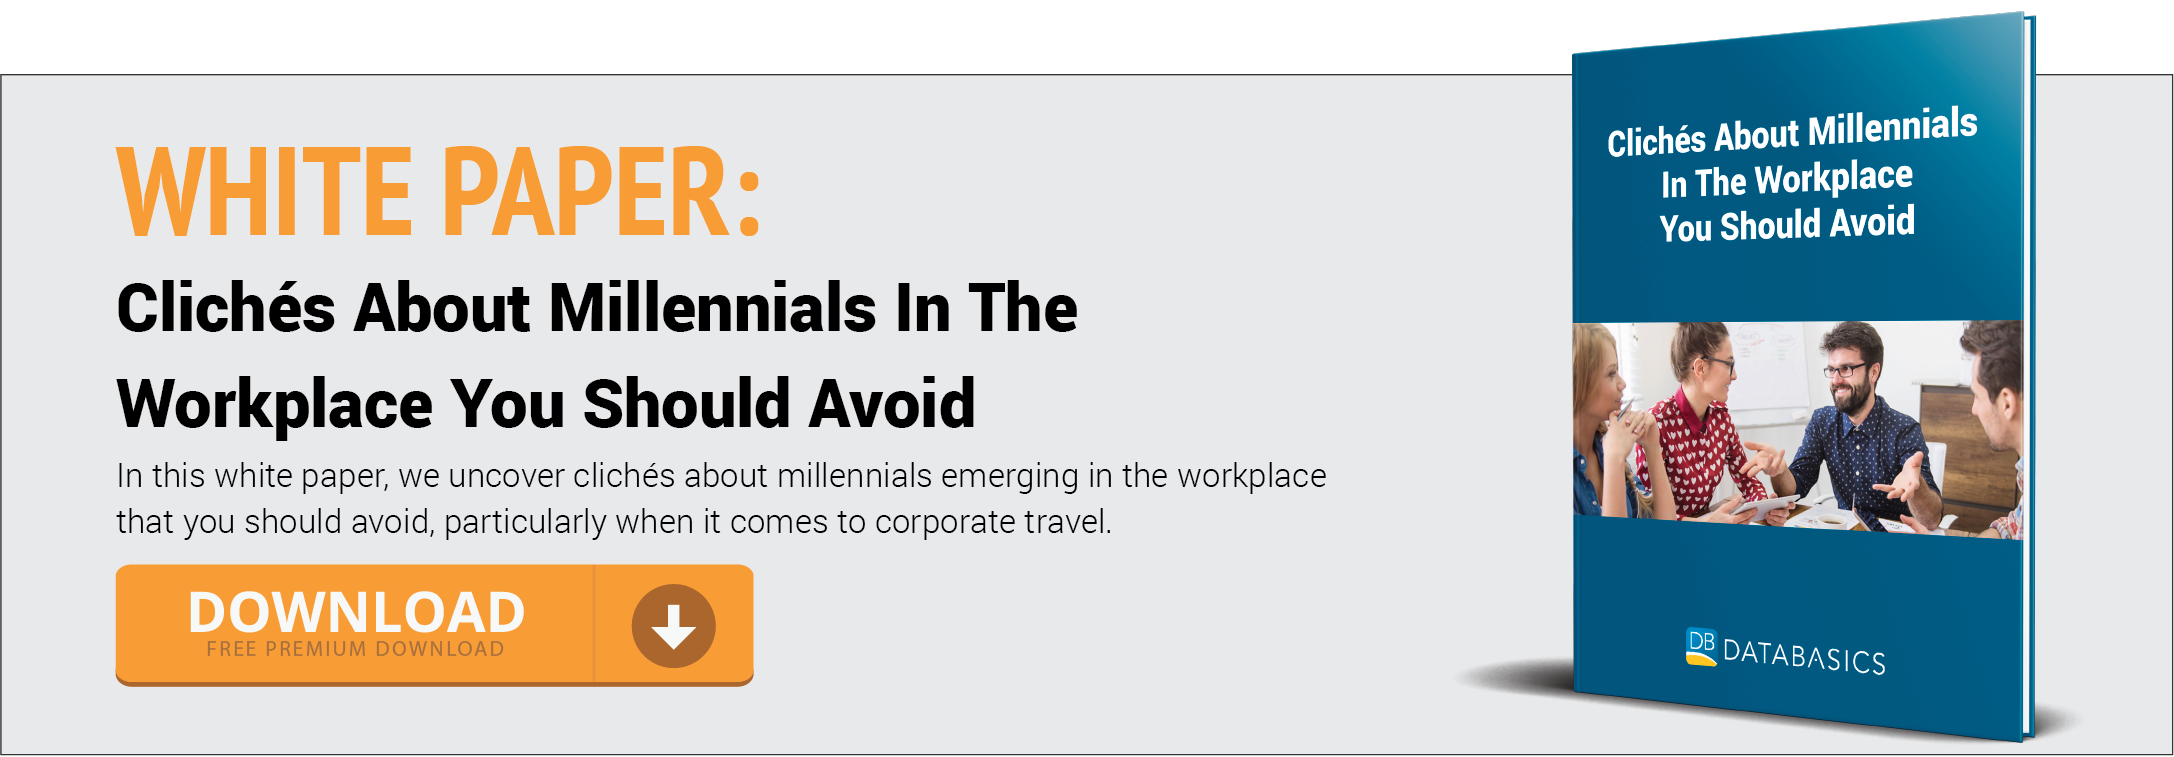 Clichés About Millennials In The Workplace You Should Avoid